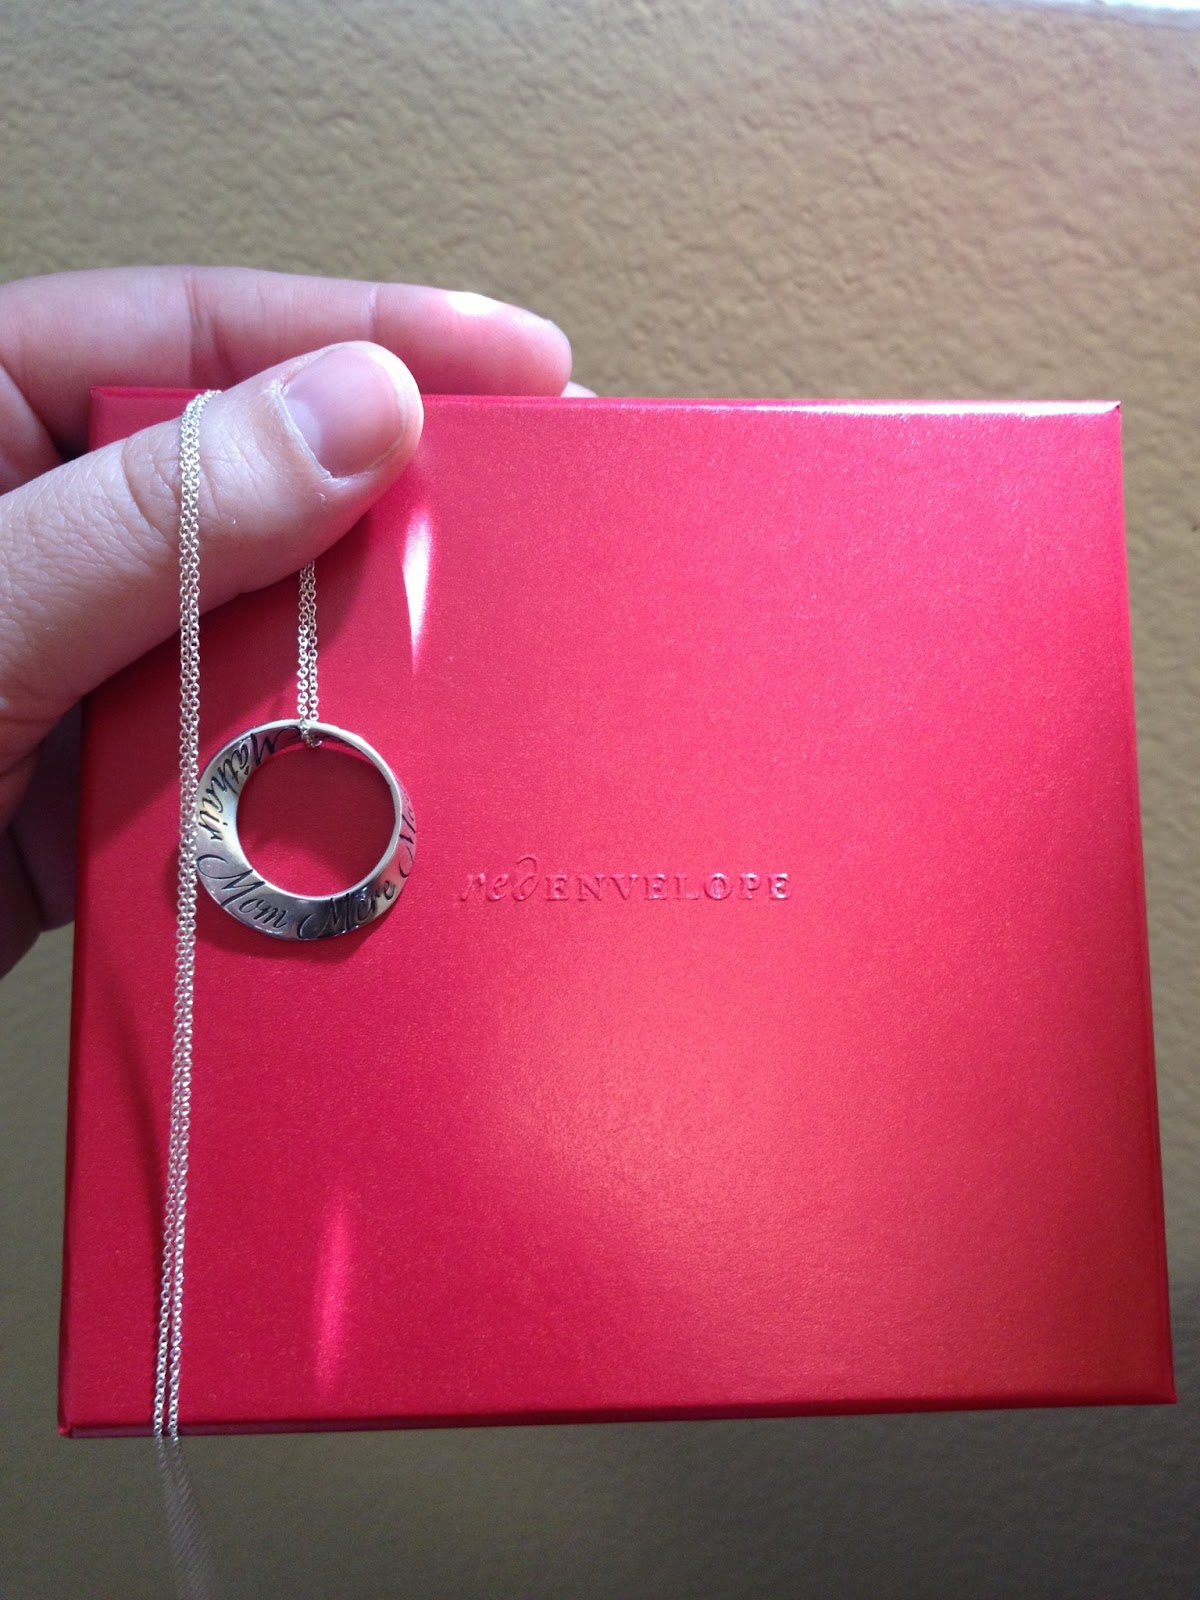 Red Envelope Gifts For Her Mom Necklace Review Frugal